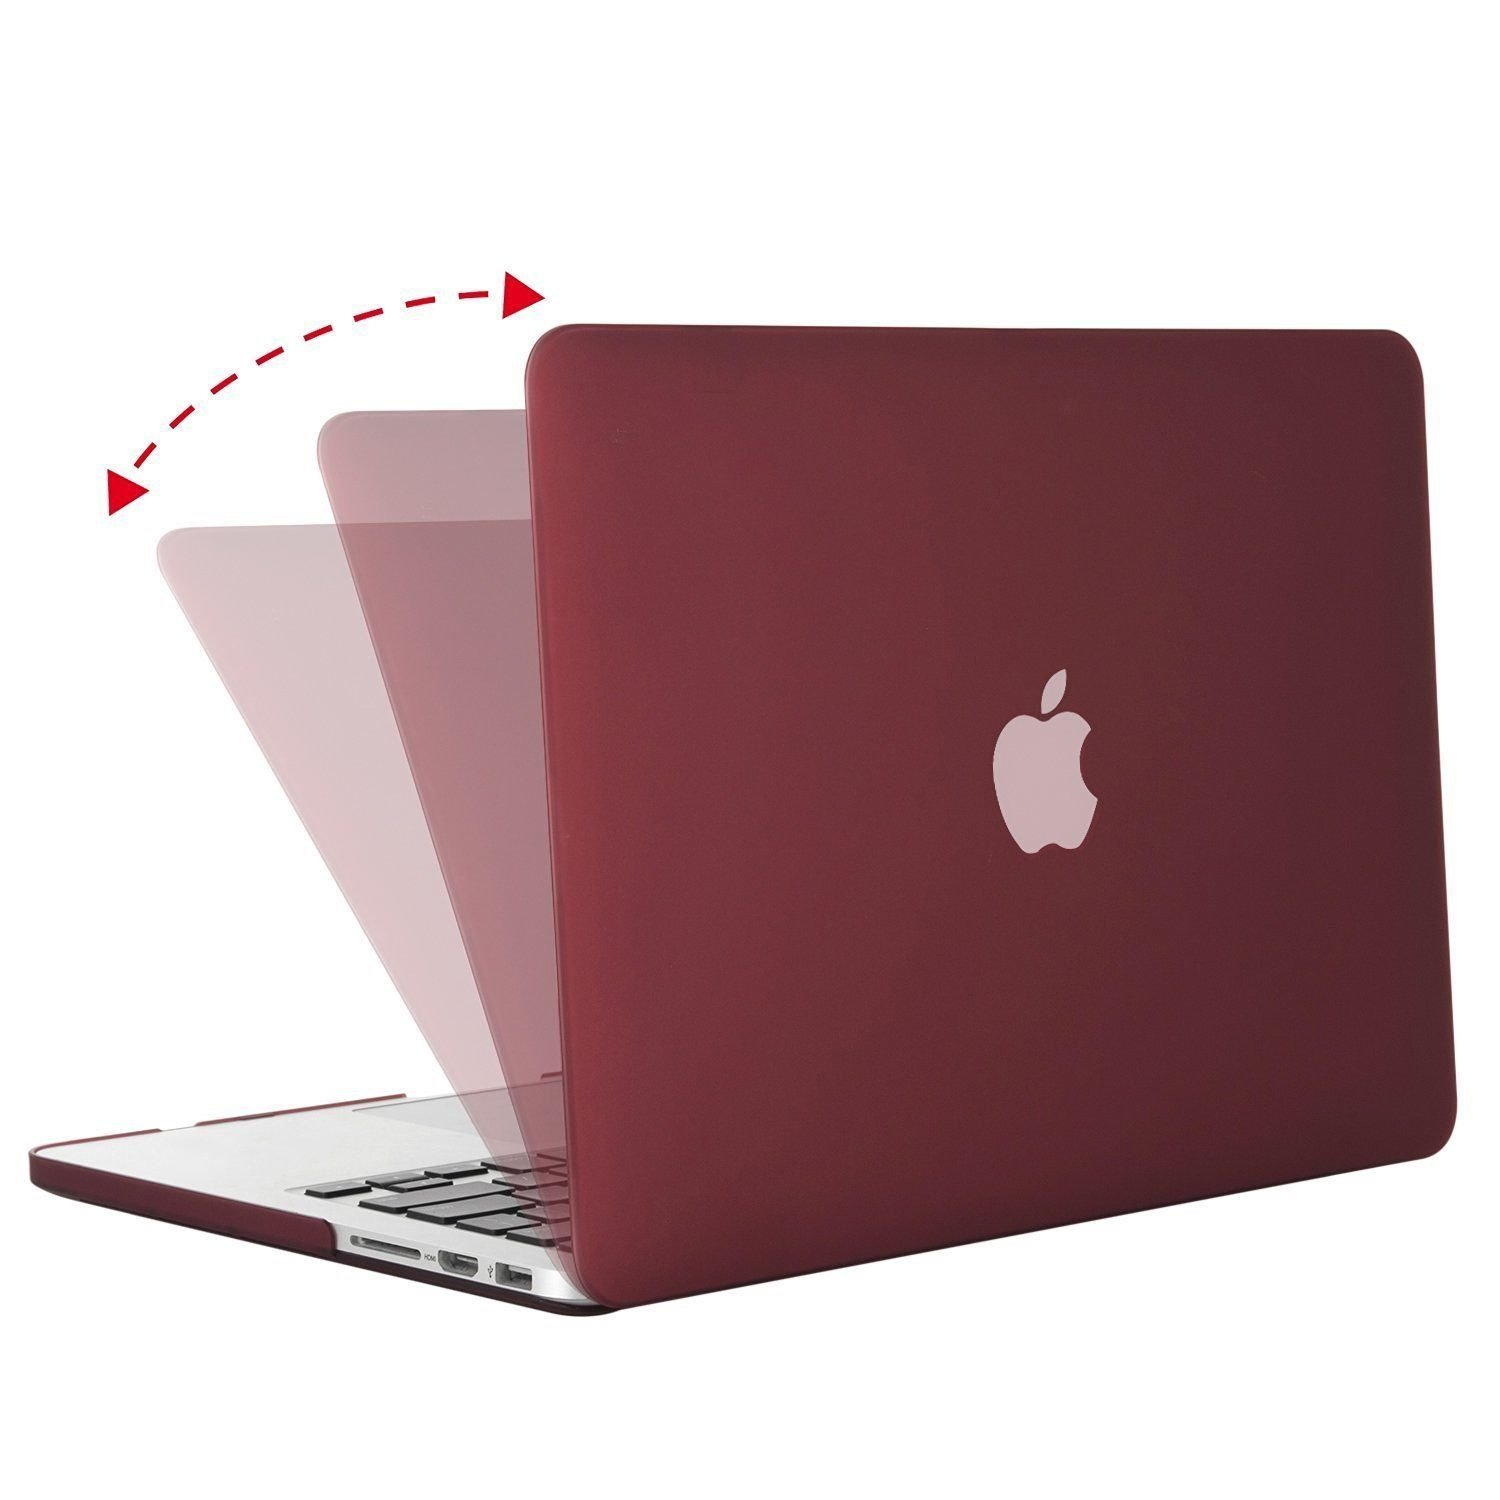 "11.6"" MOSISO WINE RED Matte Case for MacBook Air Laptop 8 COLORS FAST FREE SHIPPING USA"